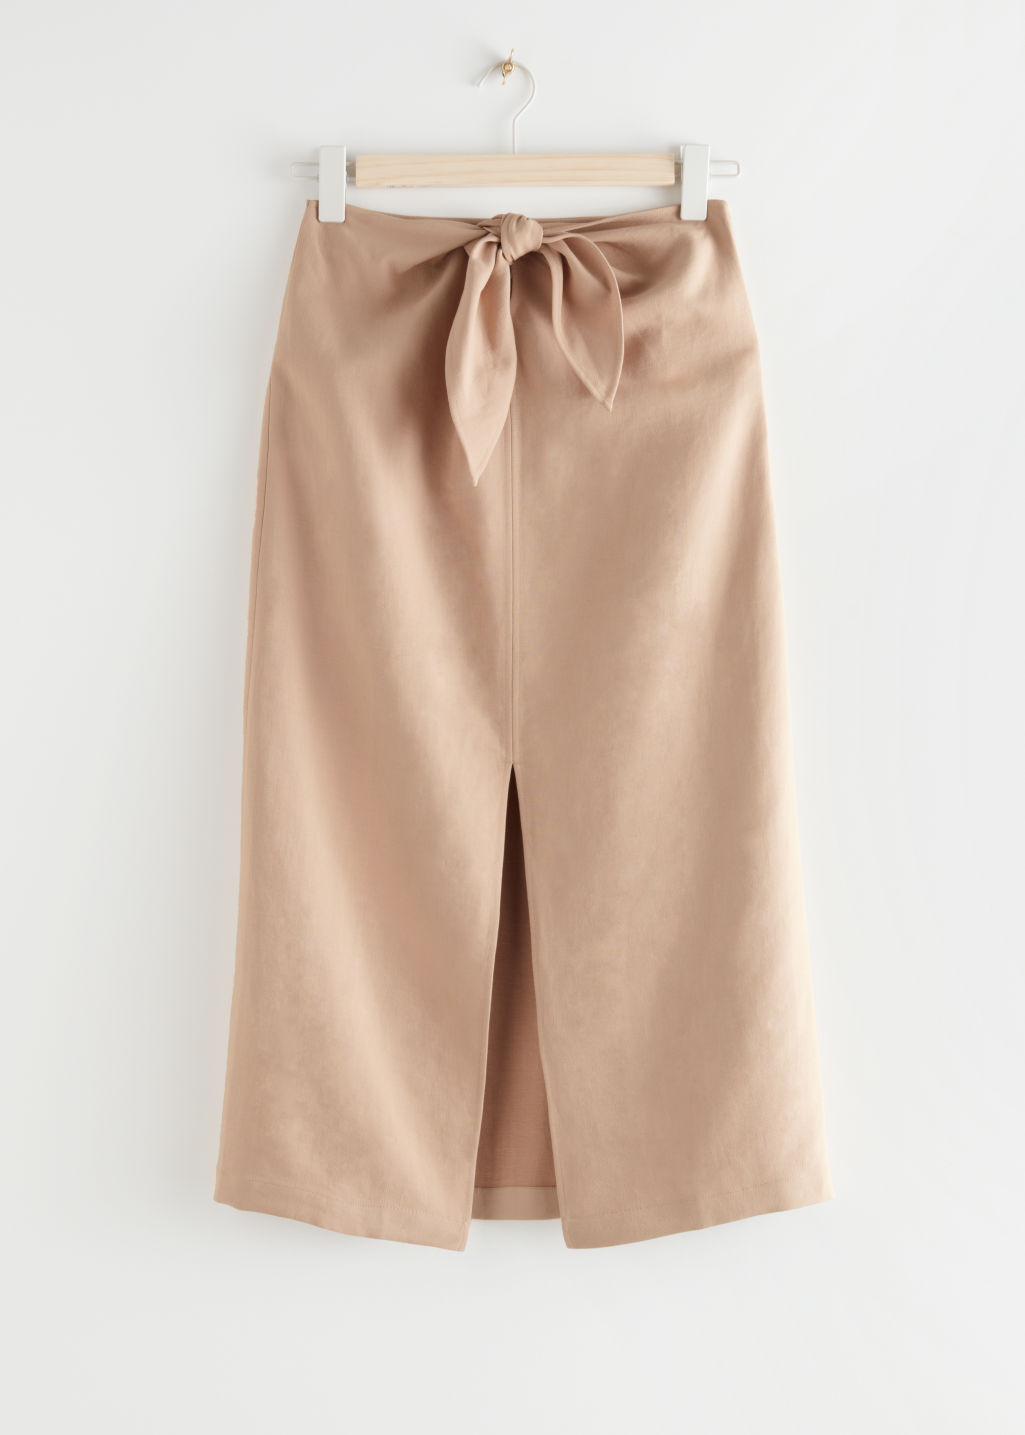 StillLife Front Image of Stories Front Tie Linen Blend Midi Skirt in Beige